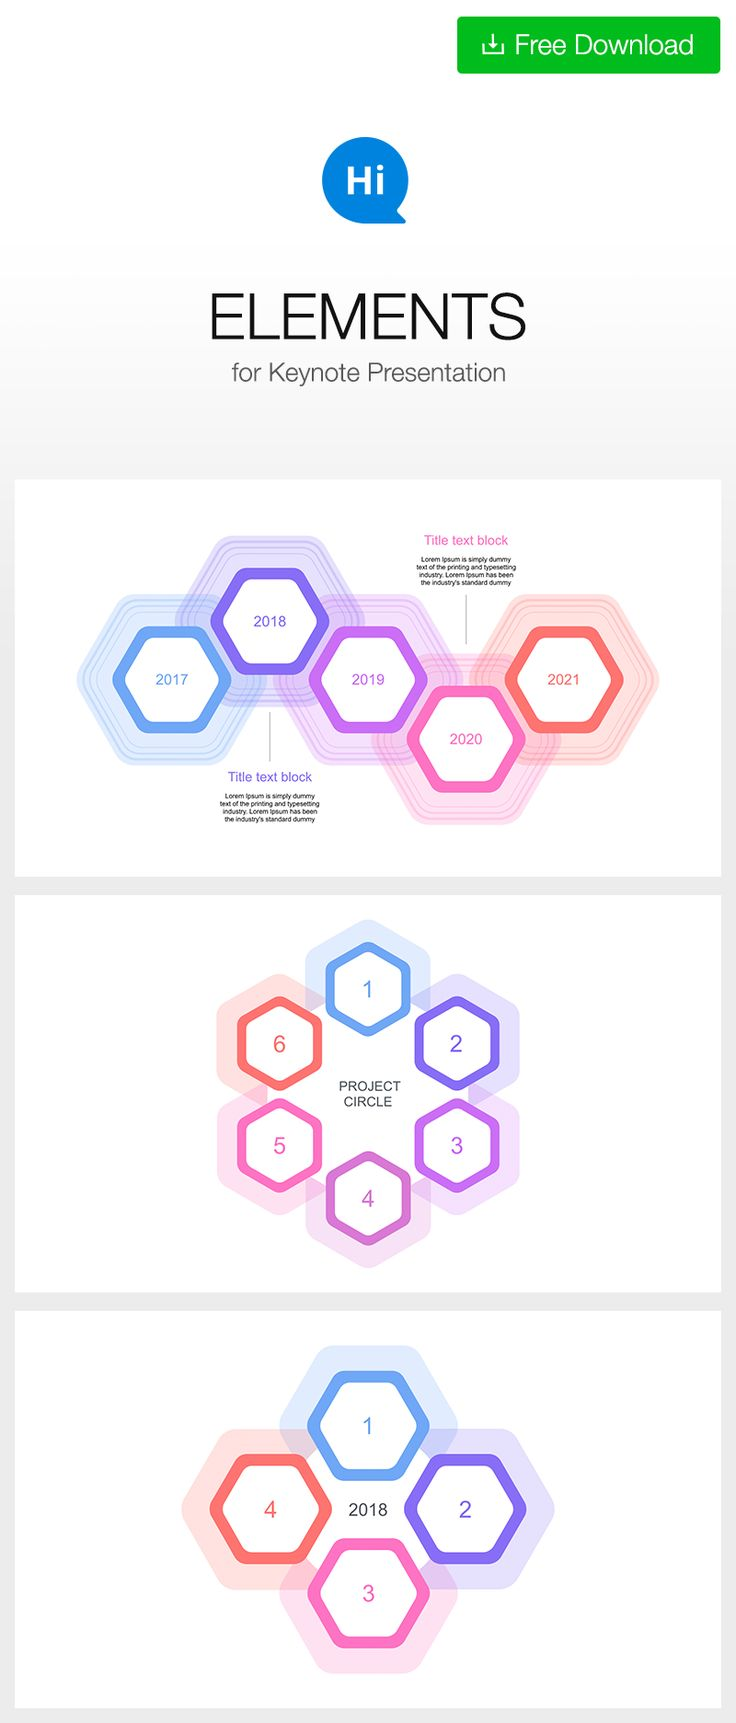 #timeline and #circular #template #free DOWNLOAD https://hislide.io/product/easy-edit-5-year-timeline-key/ #polygon #hexagon